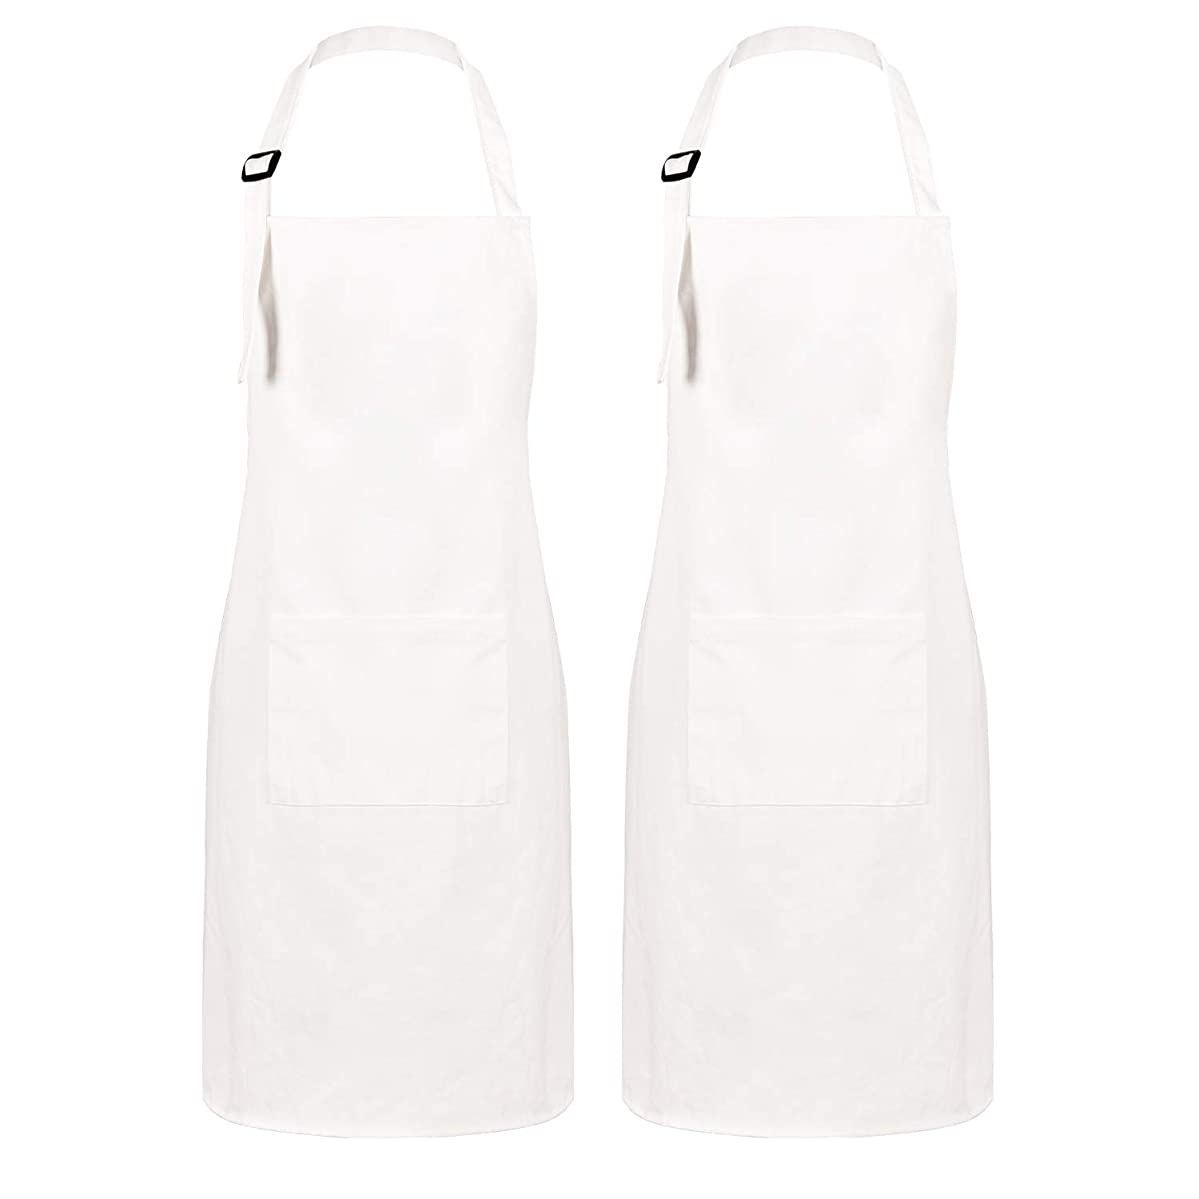 Sevenstars 2 Pack 100% Cotton Cooking Aprons with Pockets, White Kitchen Aprons Adjustable Baking Aprons for Men Women Couple Chef